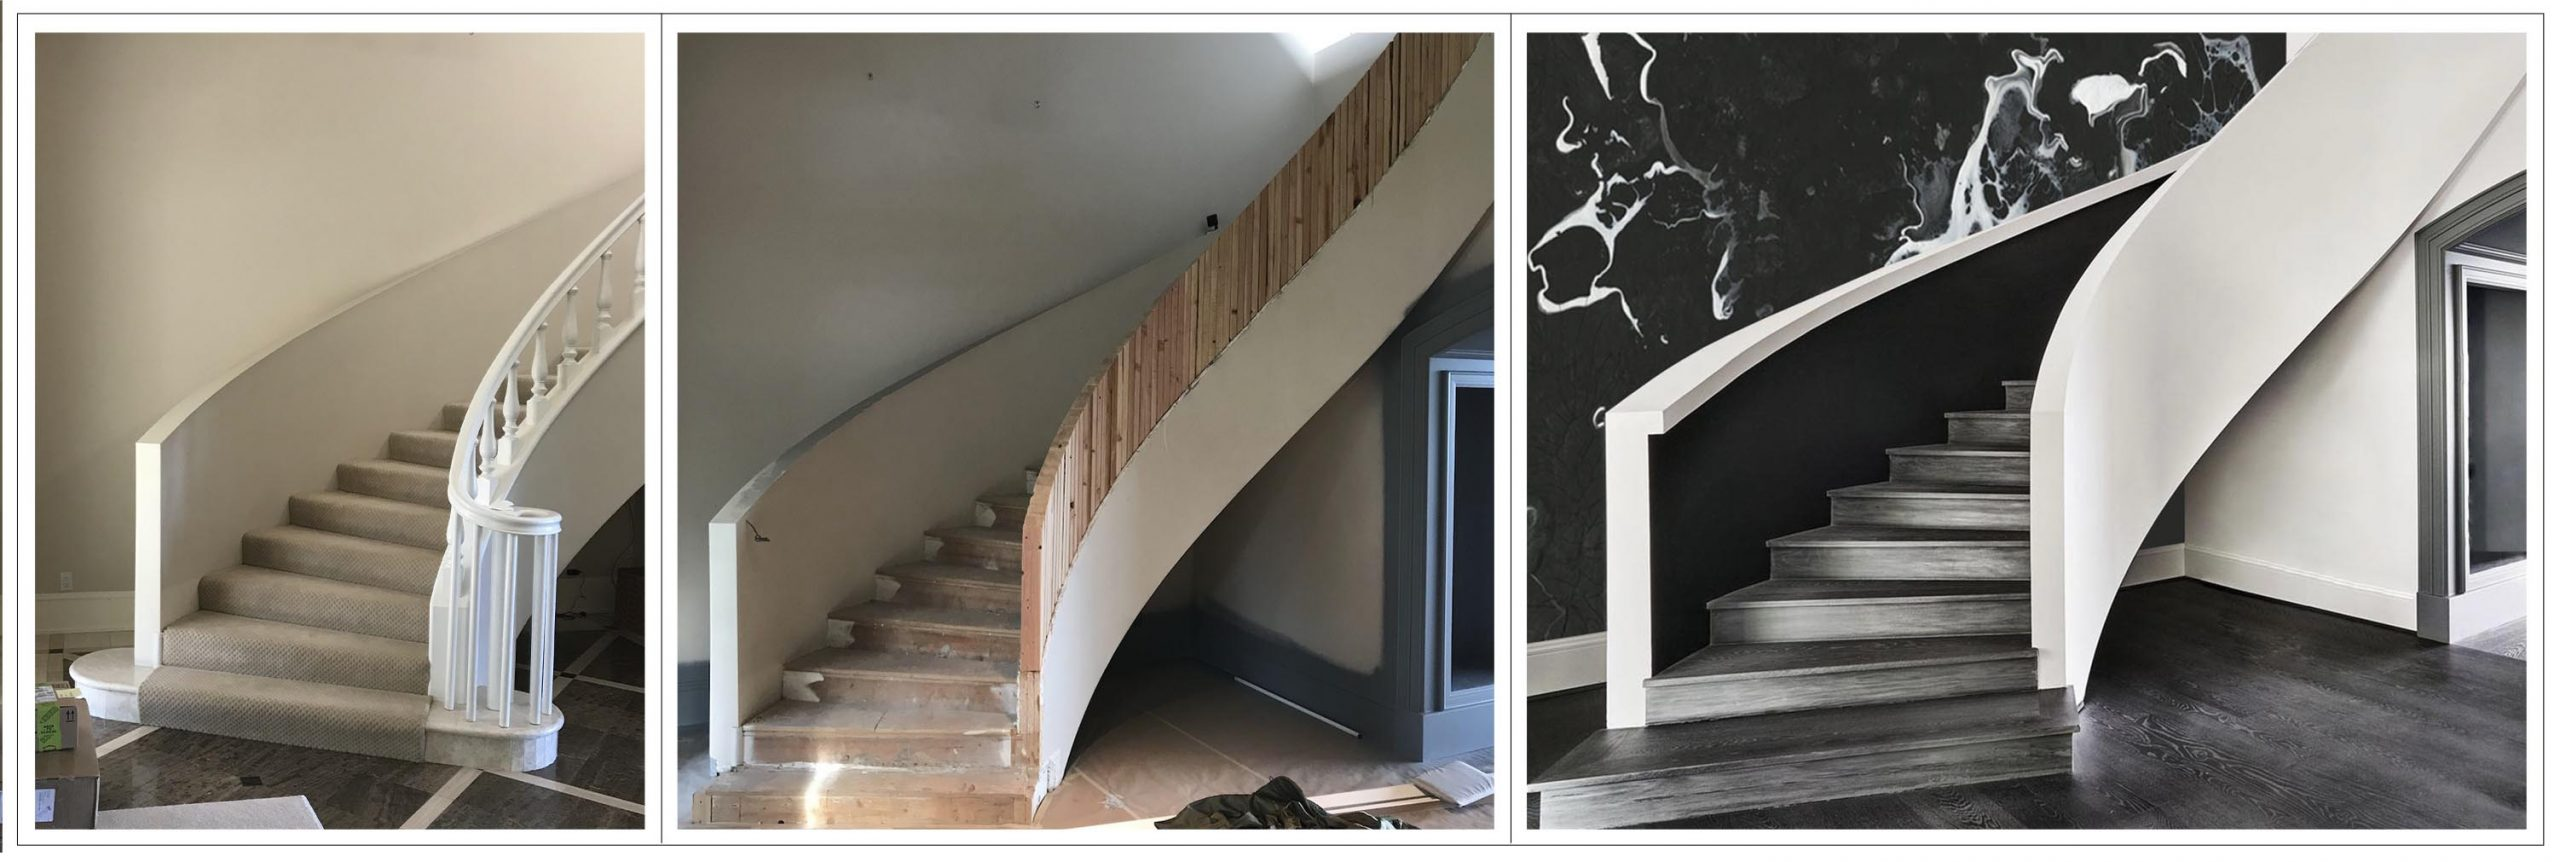 16TH_STAIRCASE_B&A_v3